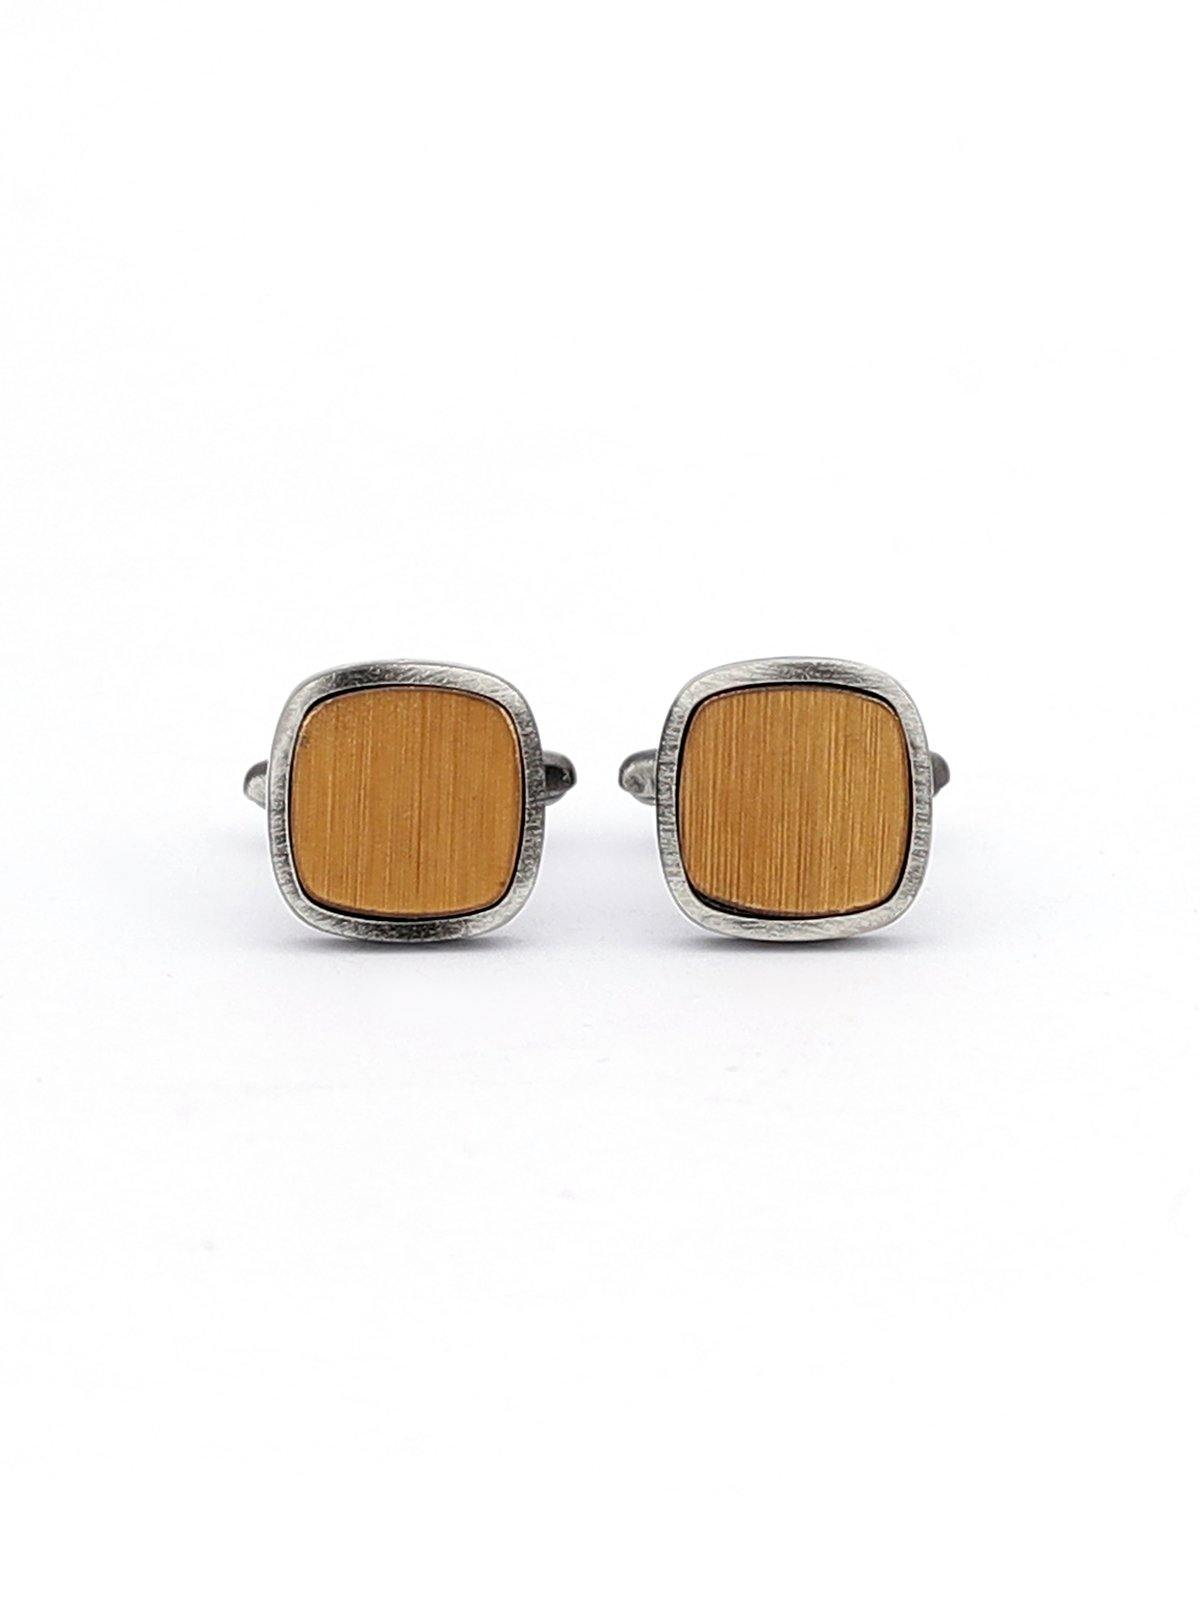 CUFFLINKS - Charcoal Clothing - Accessories -